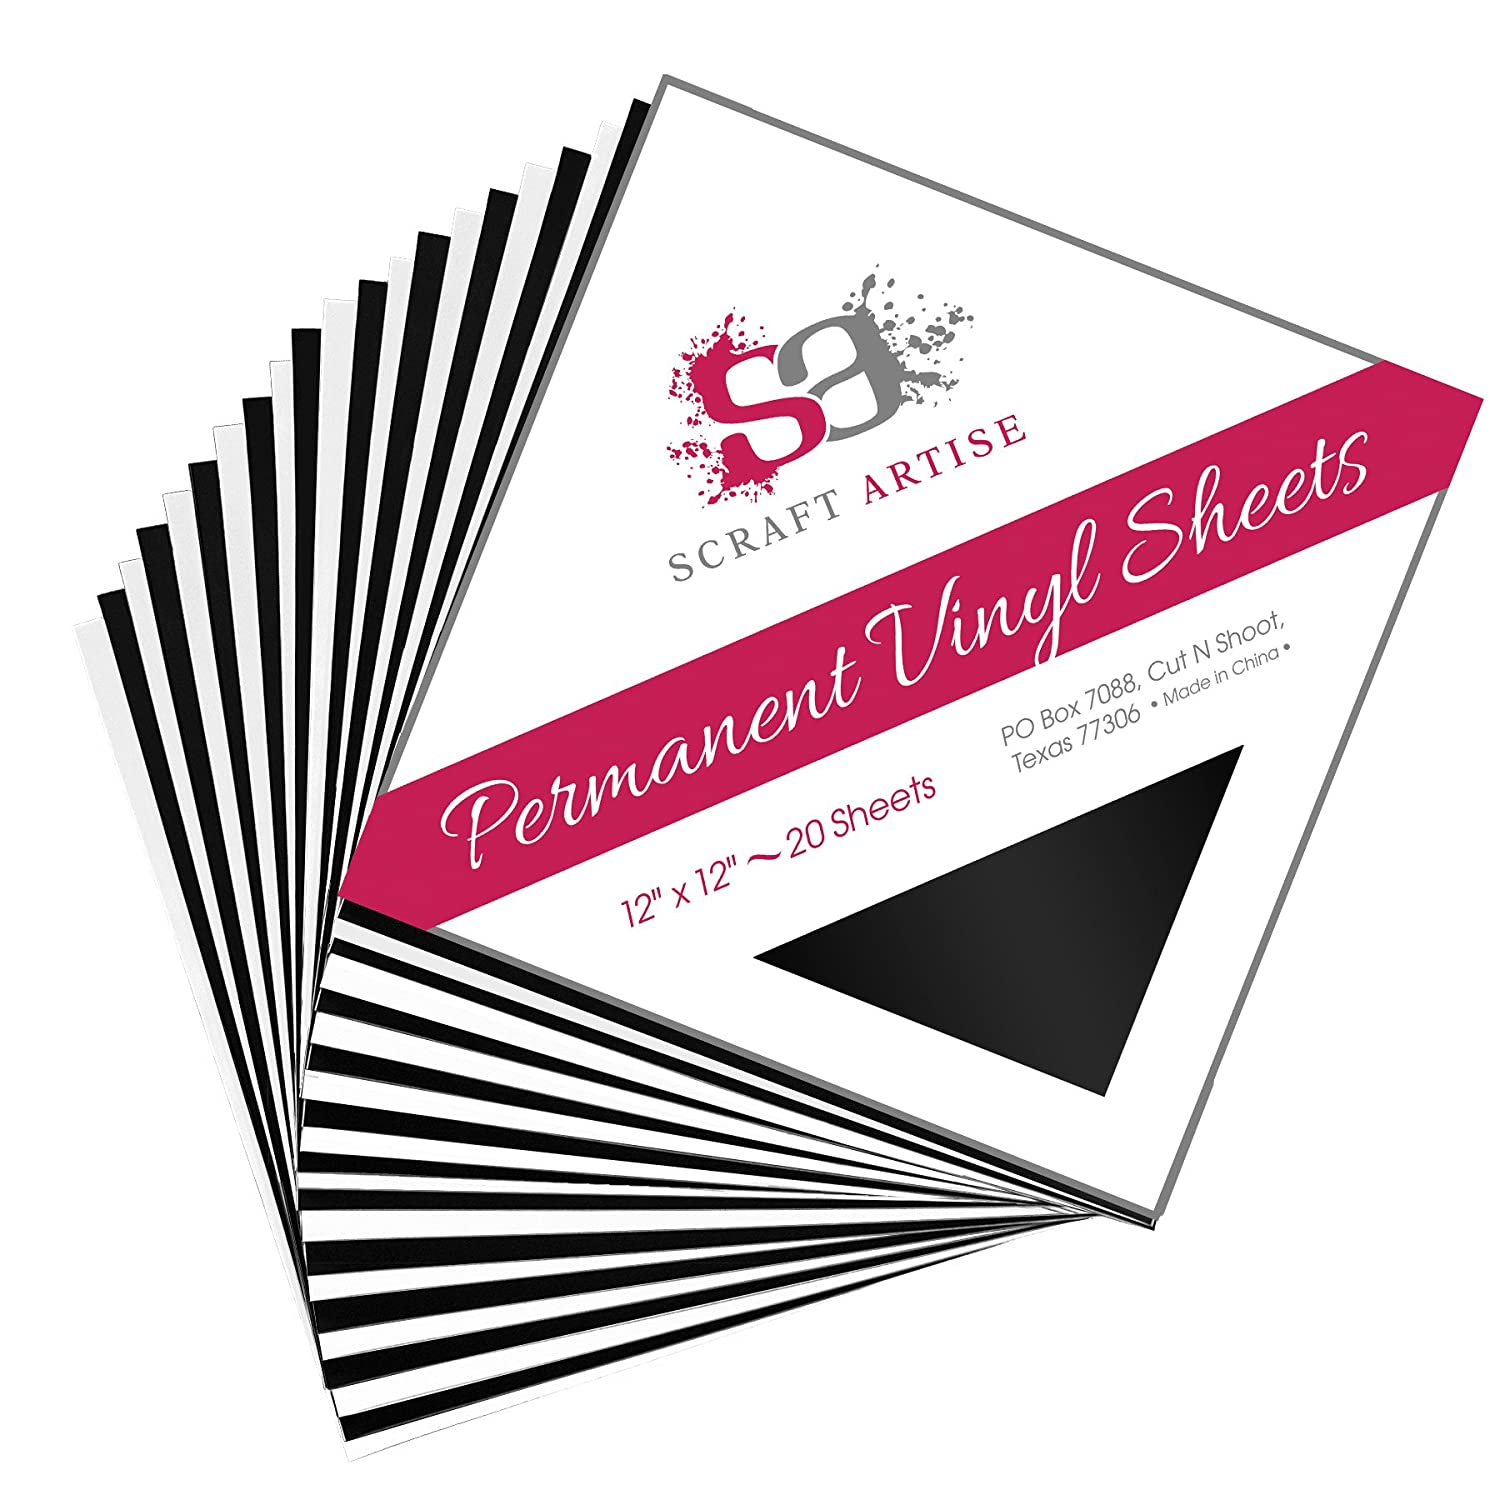 12x12 Permanent Vinyl, 20 Pack Black & White (10 of each) Outdoor Adhesive Backed Craft Sheets in Matte Finish for Silhouette and Cricut to Make Monograms Stickers Decals and Signs by Scraft Artise VPMBKW20A